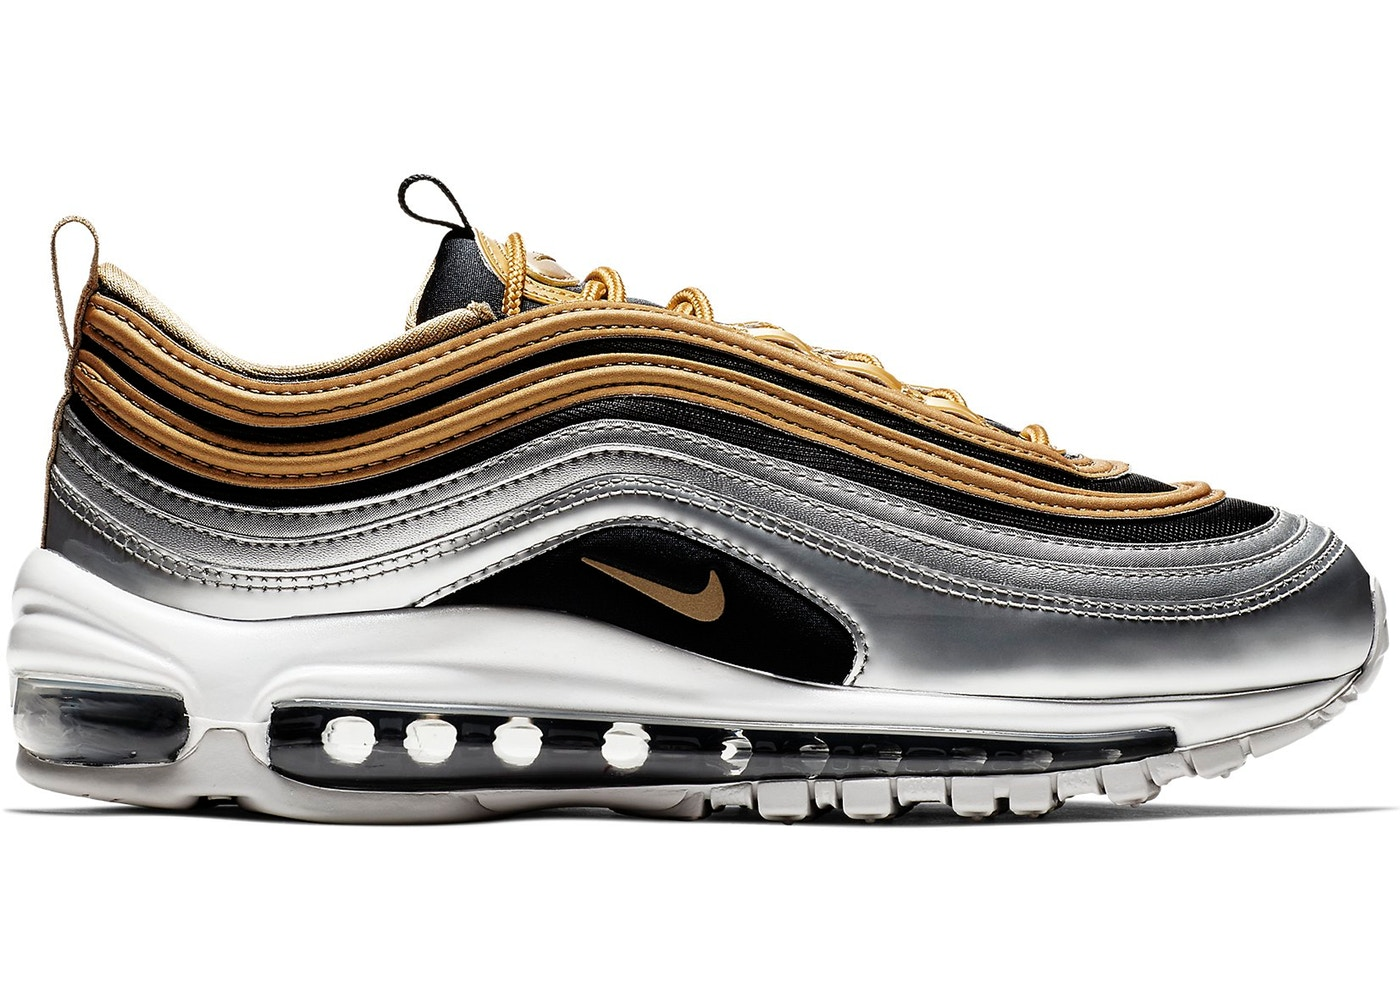 Air Max 97 Metallic Gold Black (W)